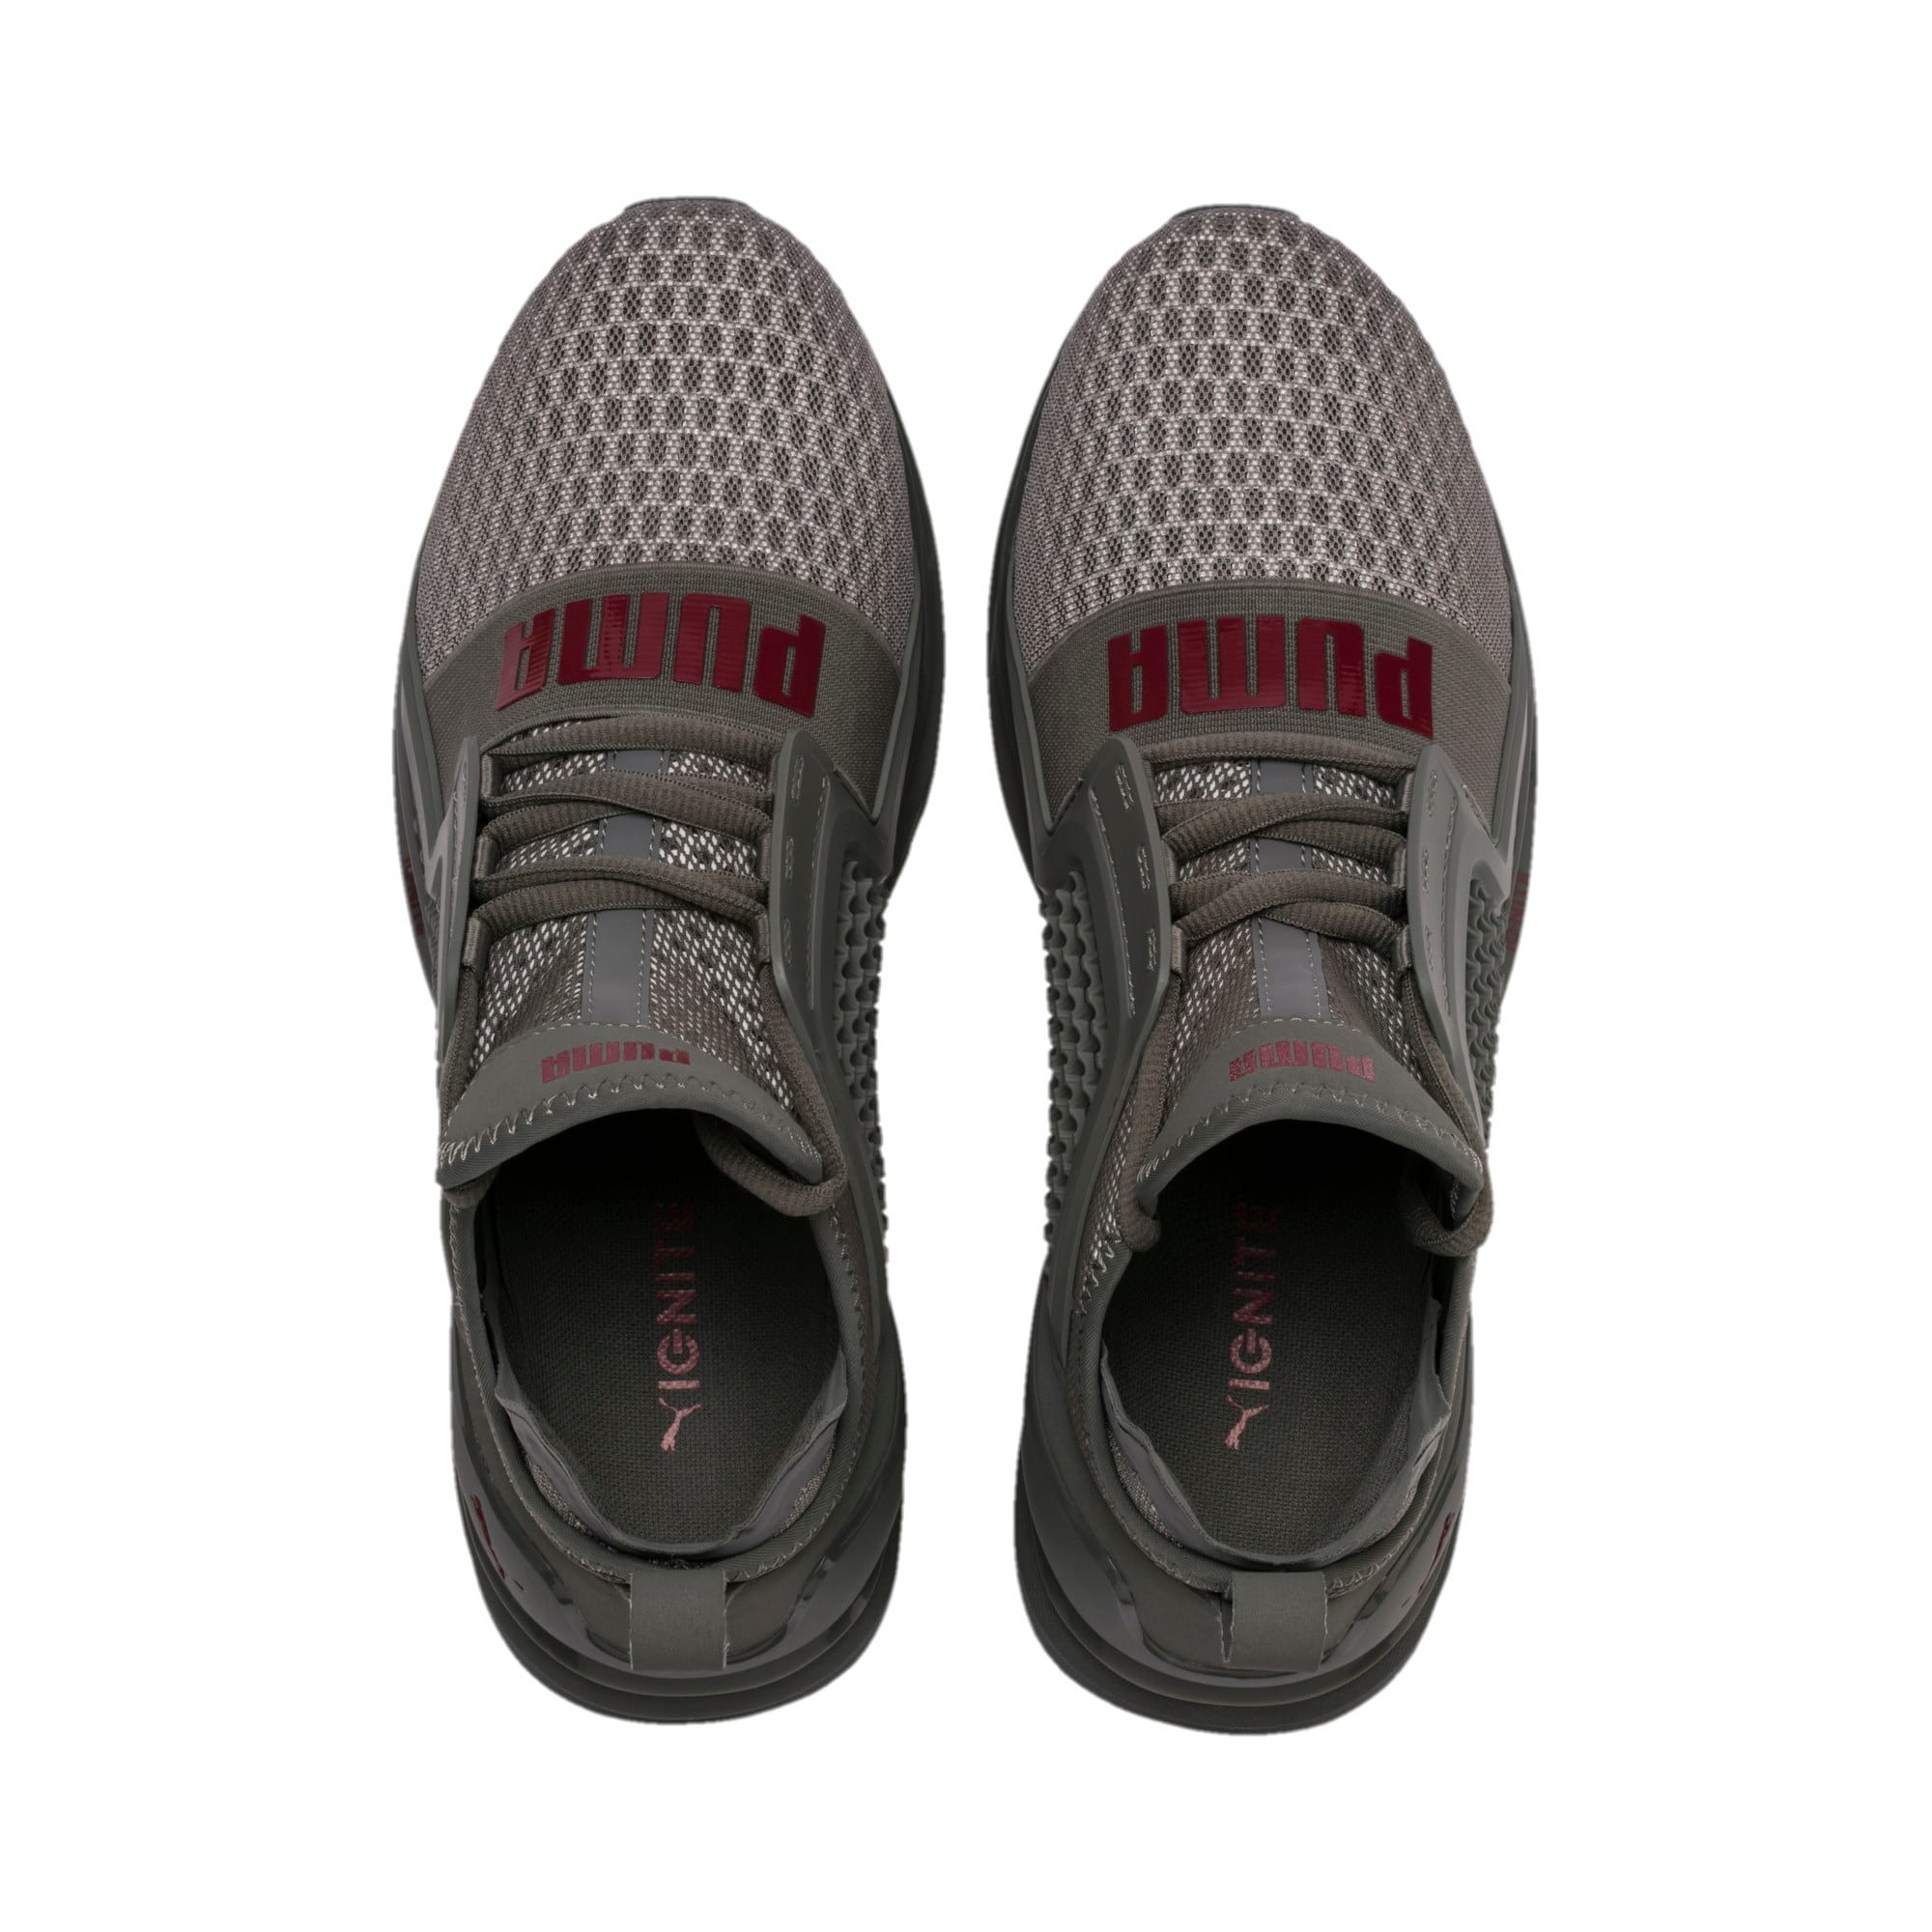 Thumbnail 4 of IGNITE Limitless Men's Running Shoes, CASTLEROCK-Rhubarb, medium-IND